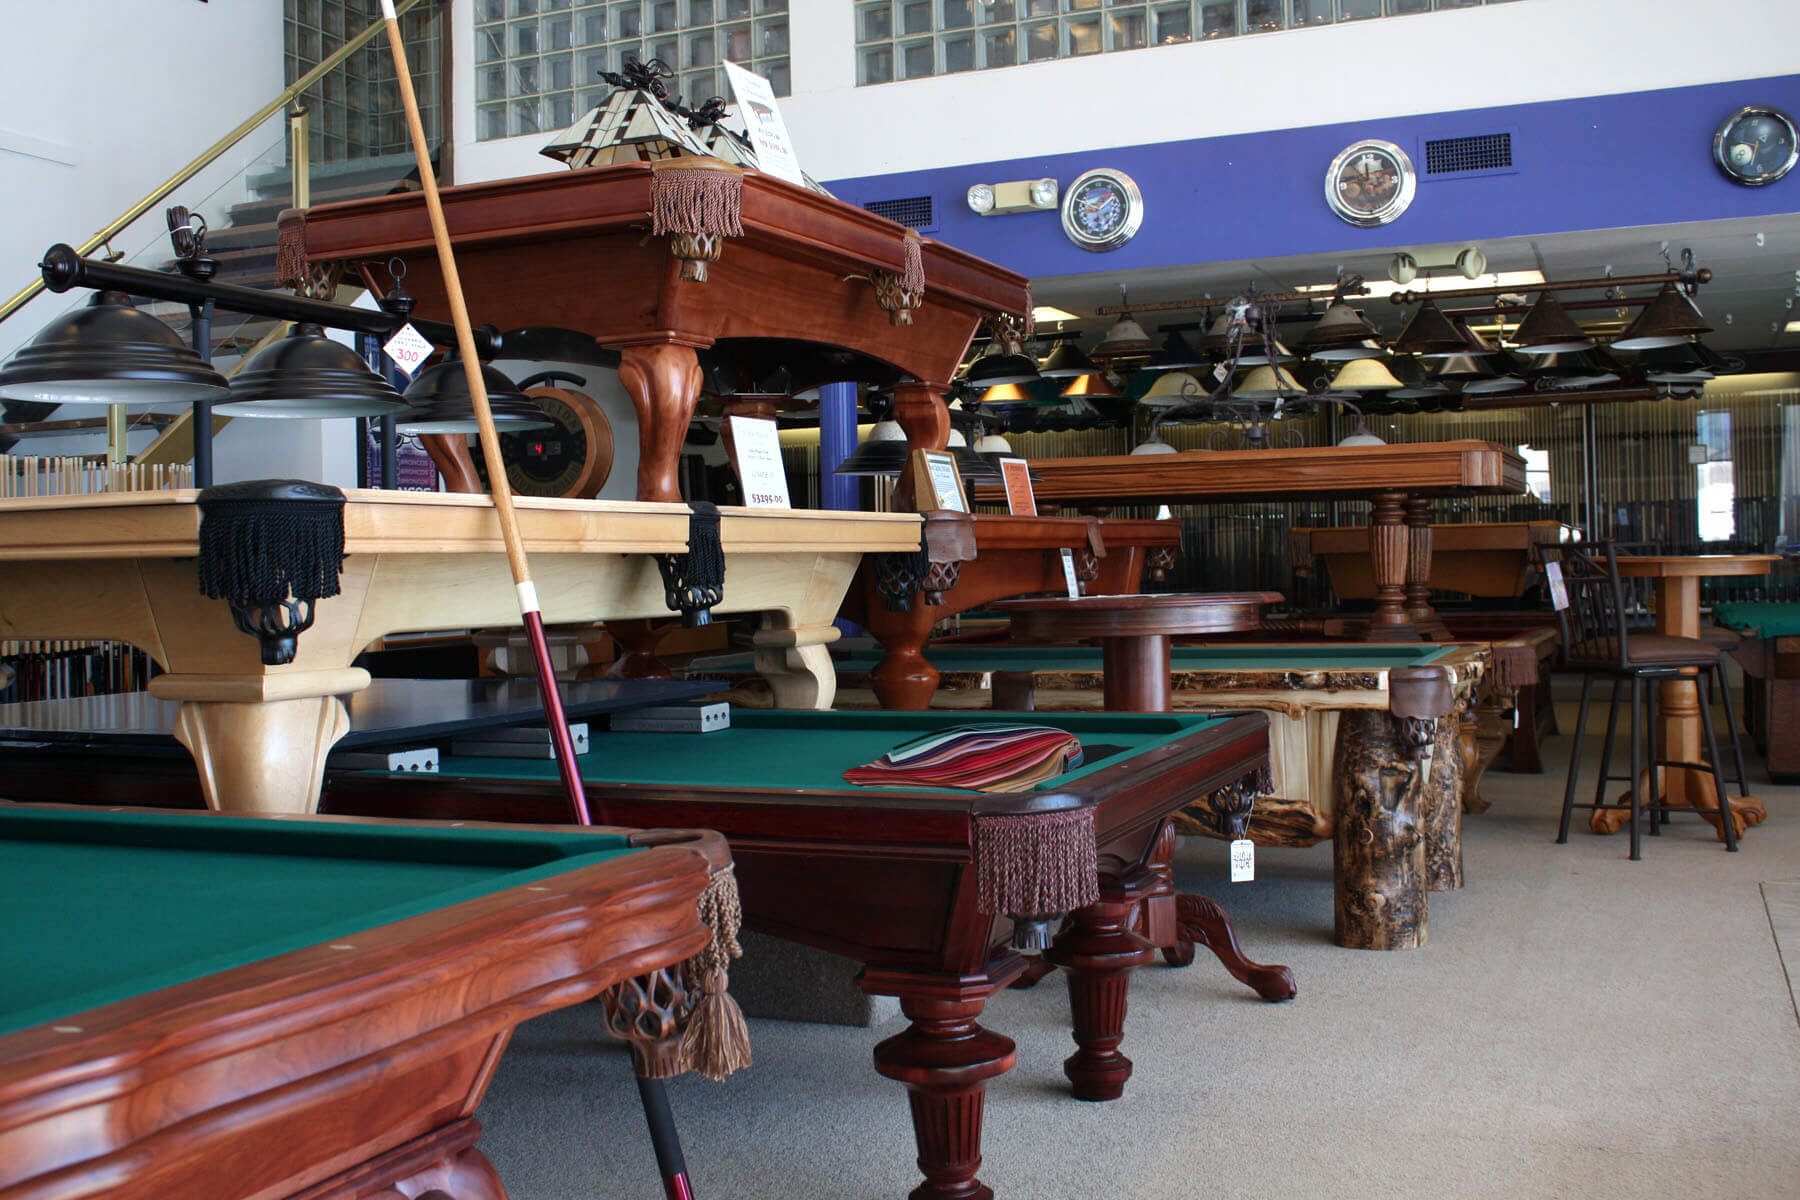 Best Quality Billiards Pool Table Showroom Store